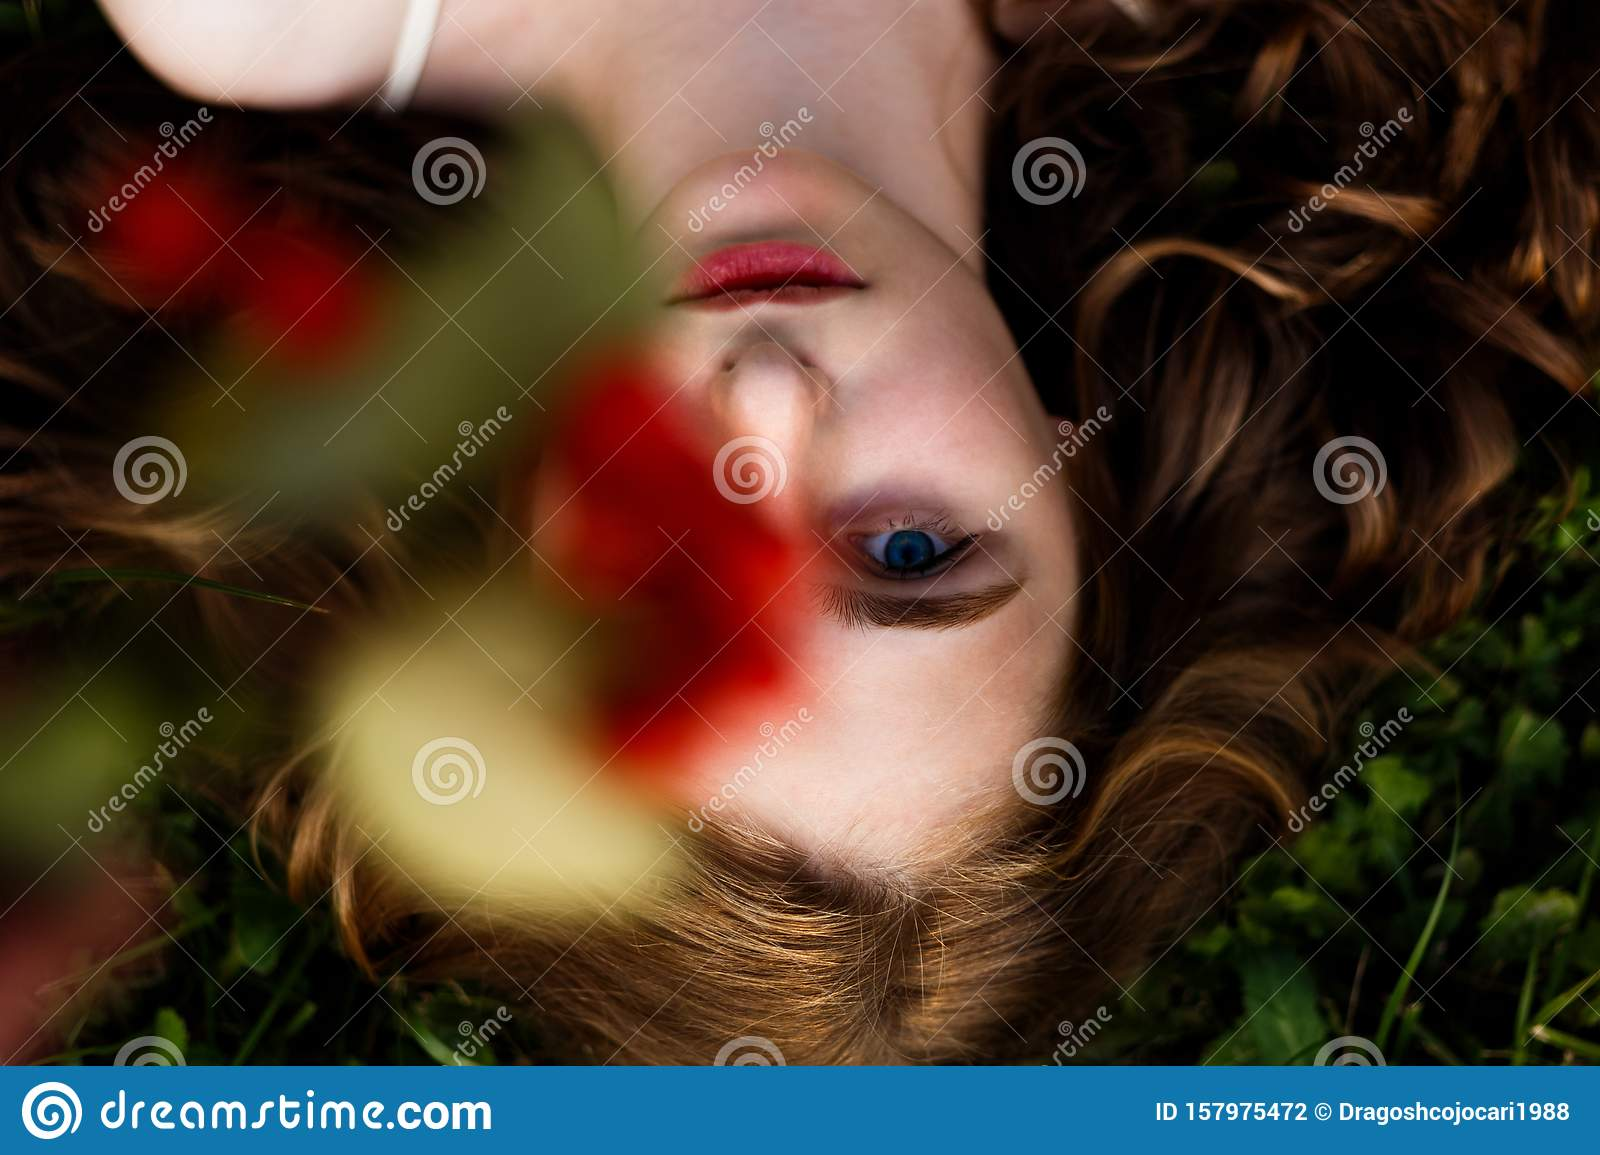 Above Image Of A Pretty Girl With Red Curly Hair And Blue Eyes Looking At Camera Artistic Concept For Autumn